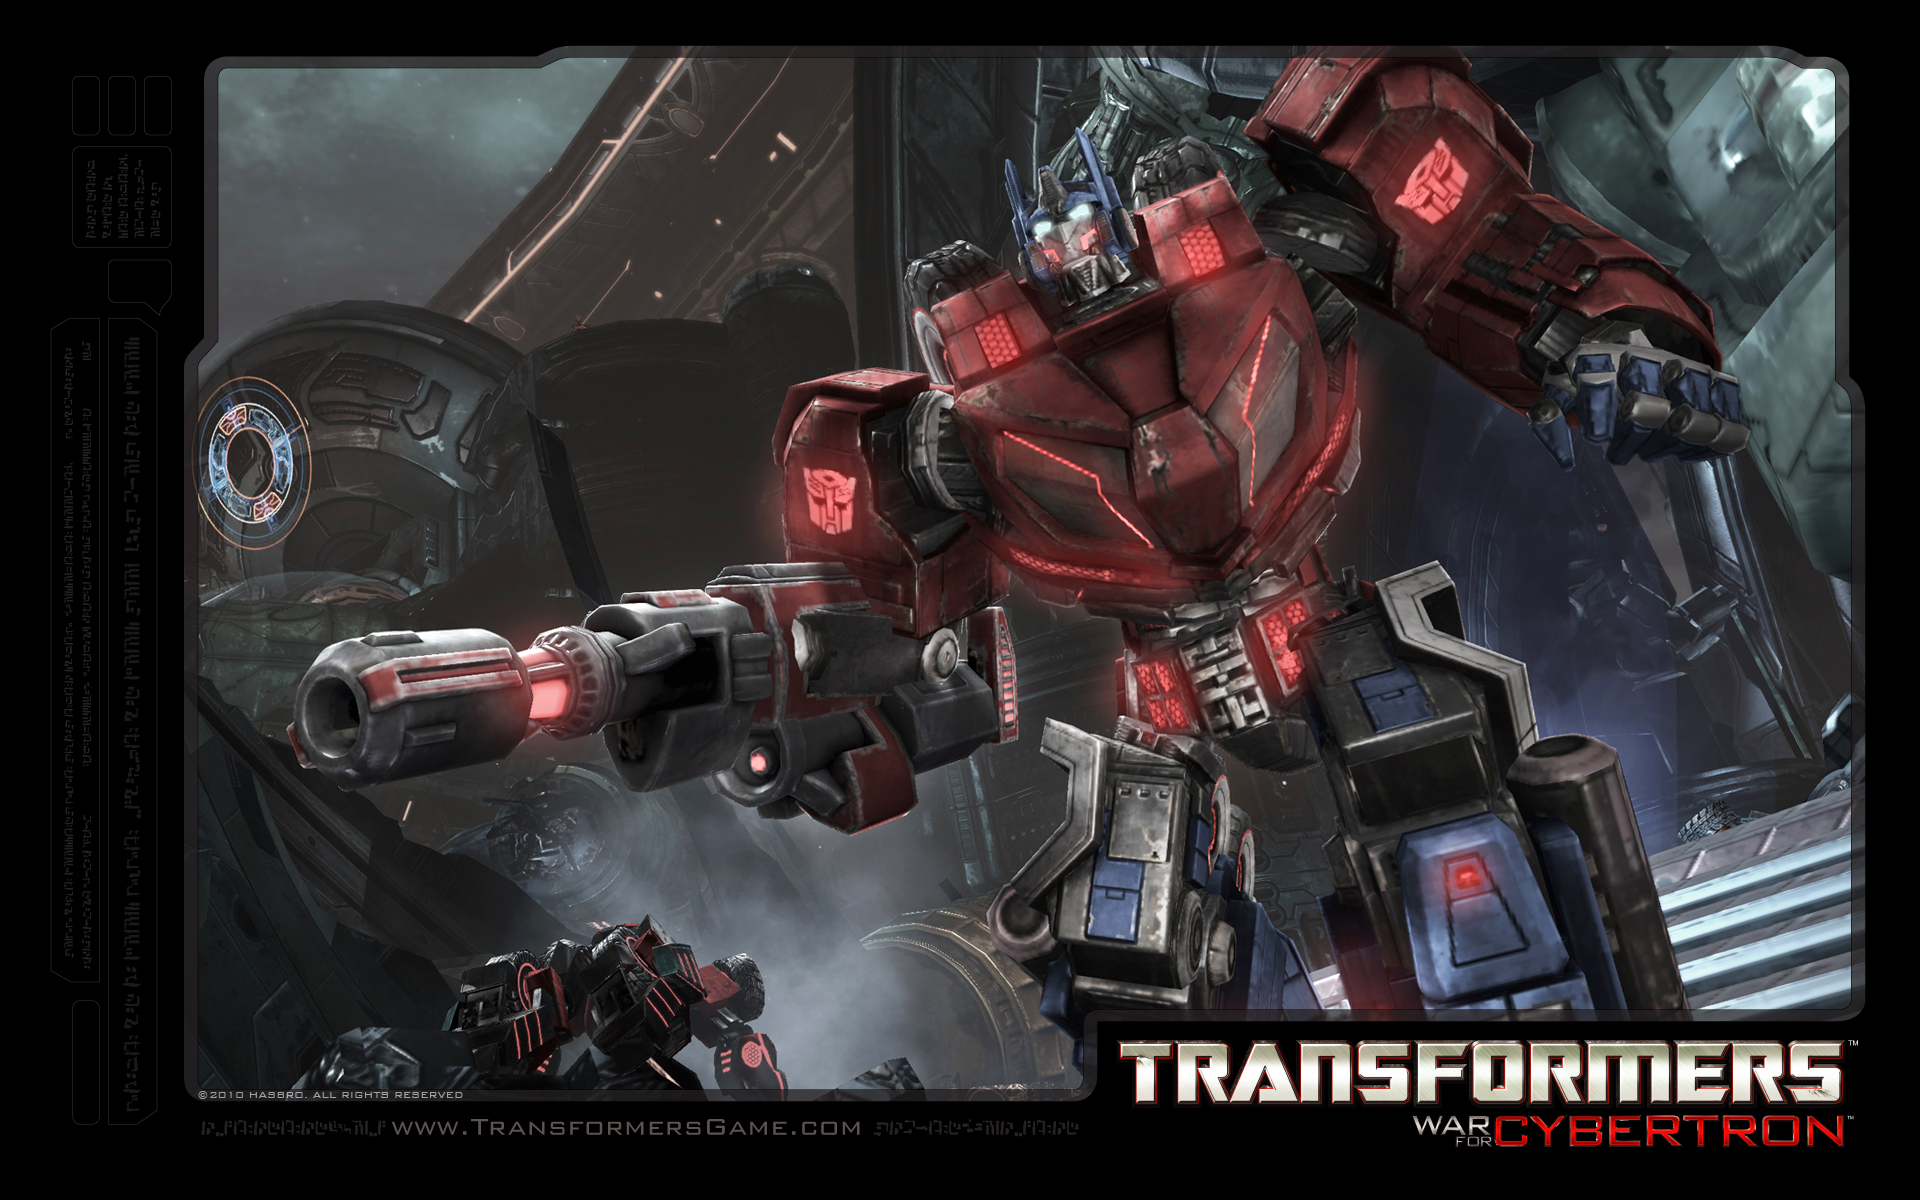 Арт к игре Transformers: War for Cybertron